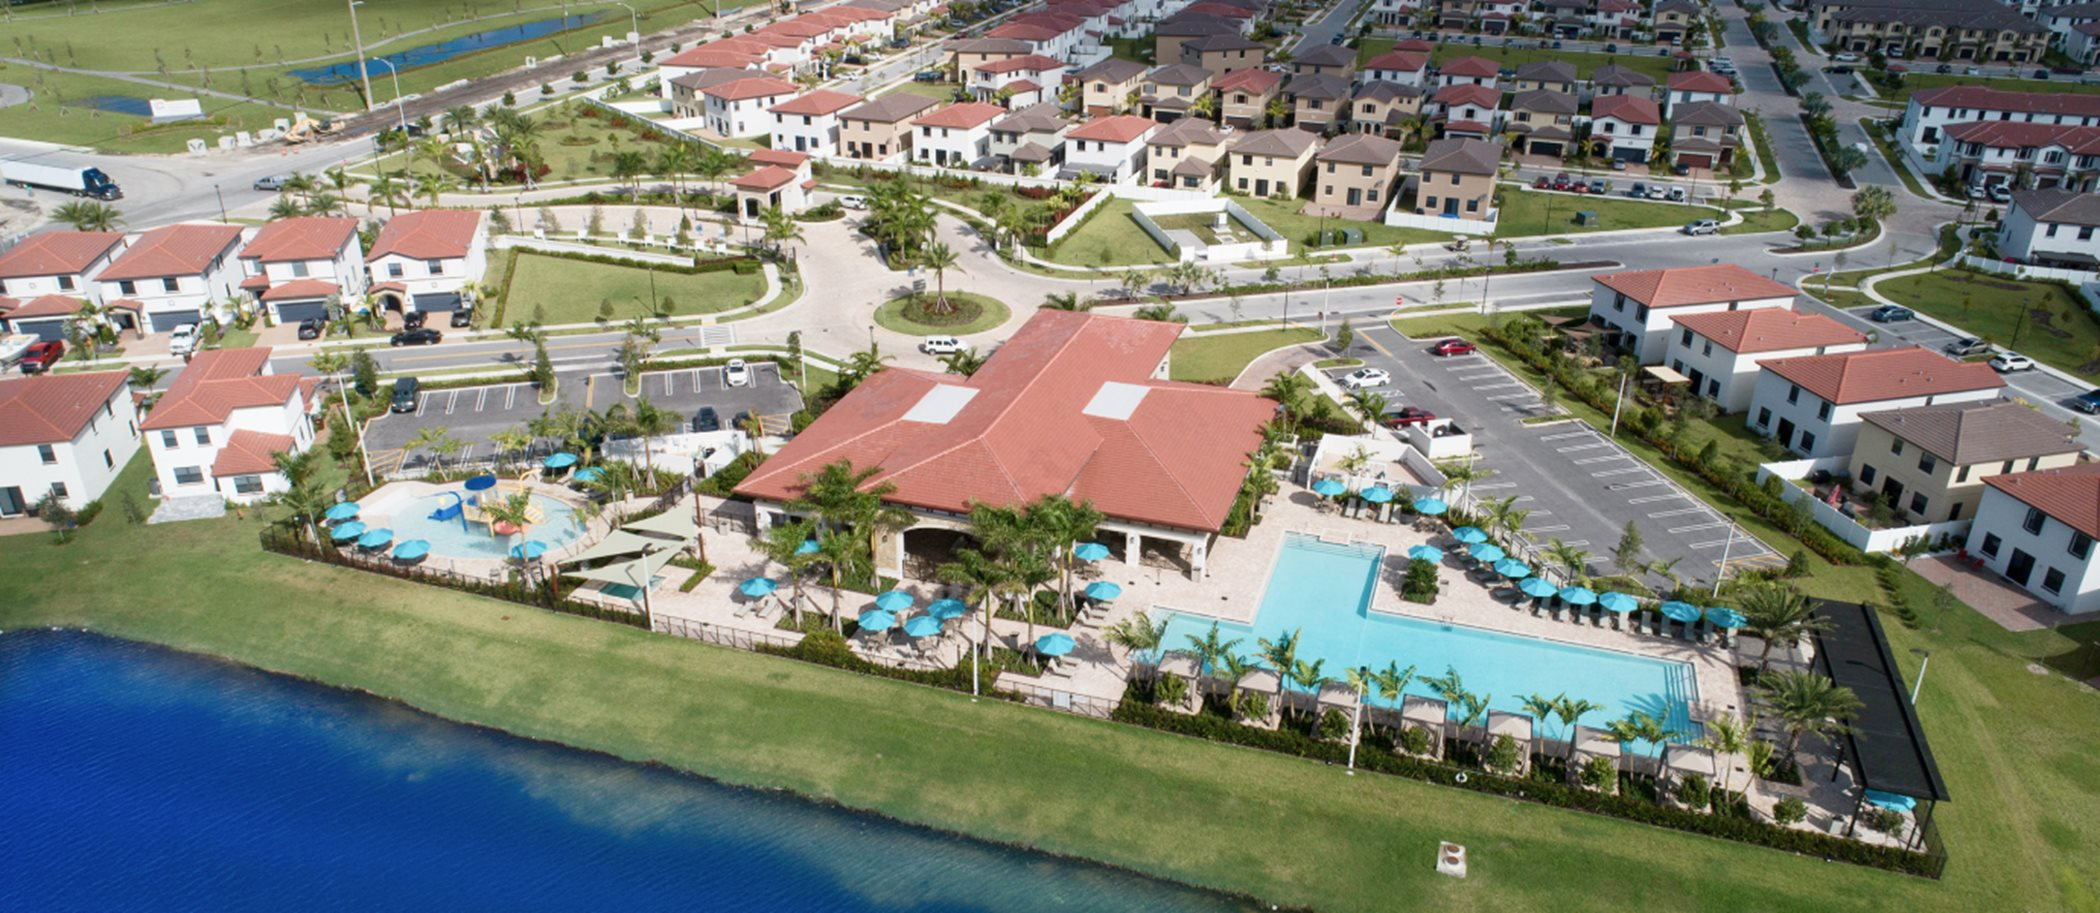 Aquabella collection of villas and townhomes